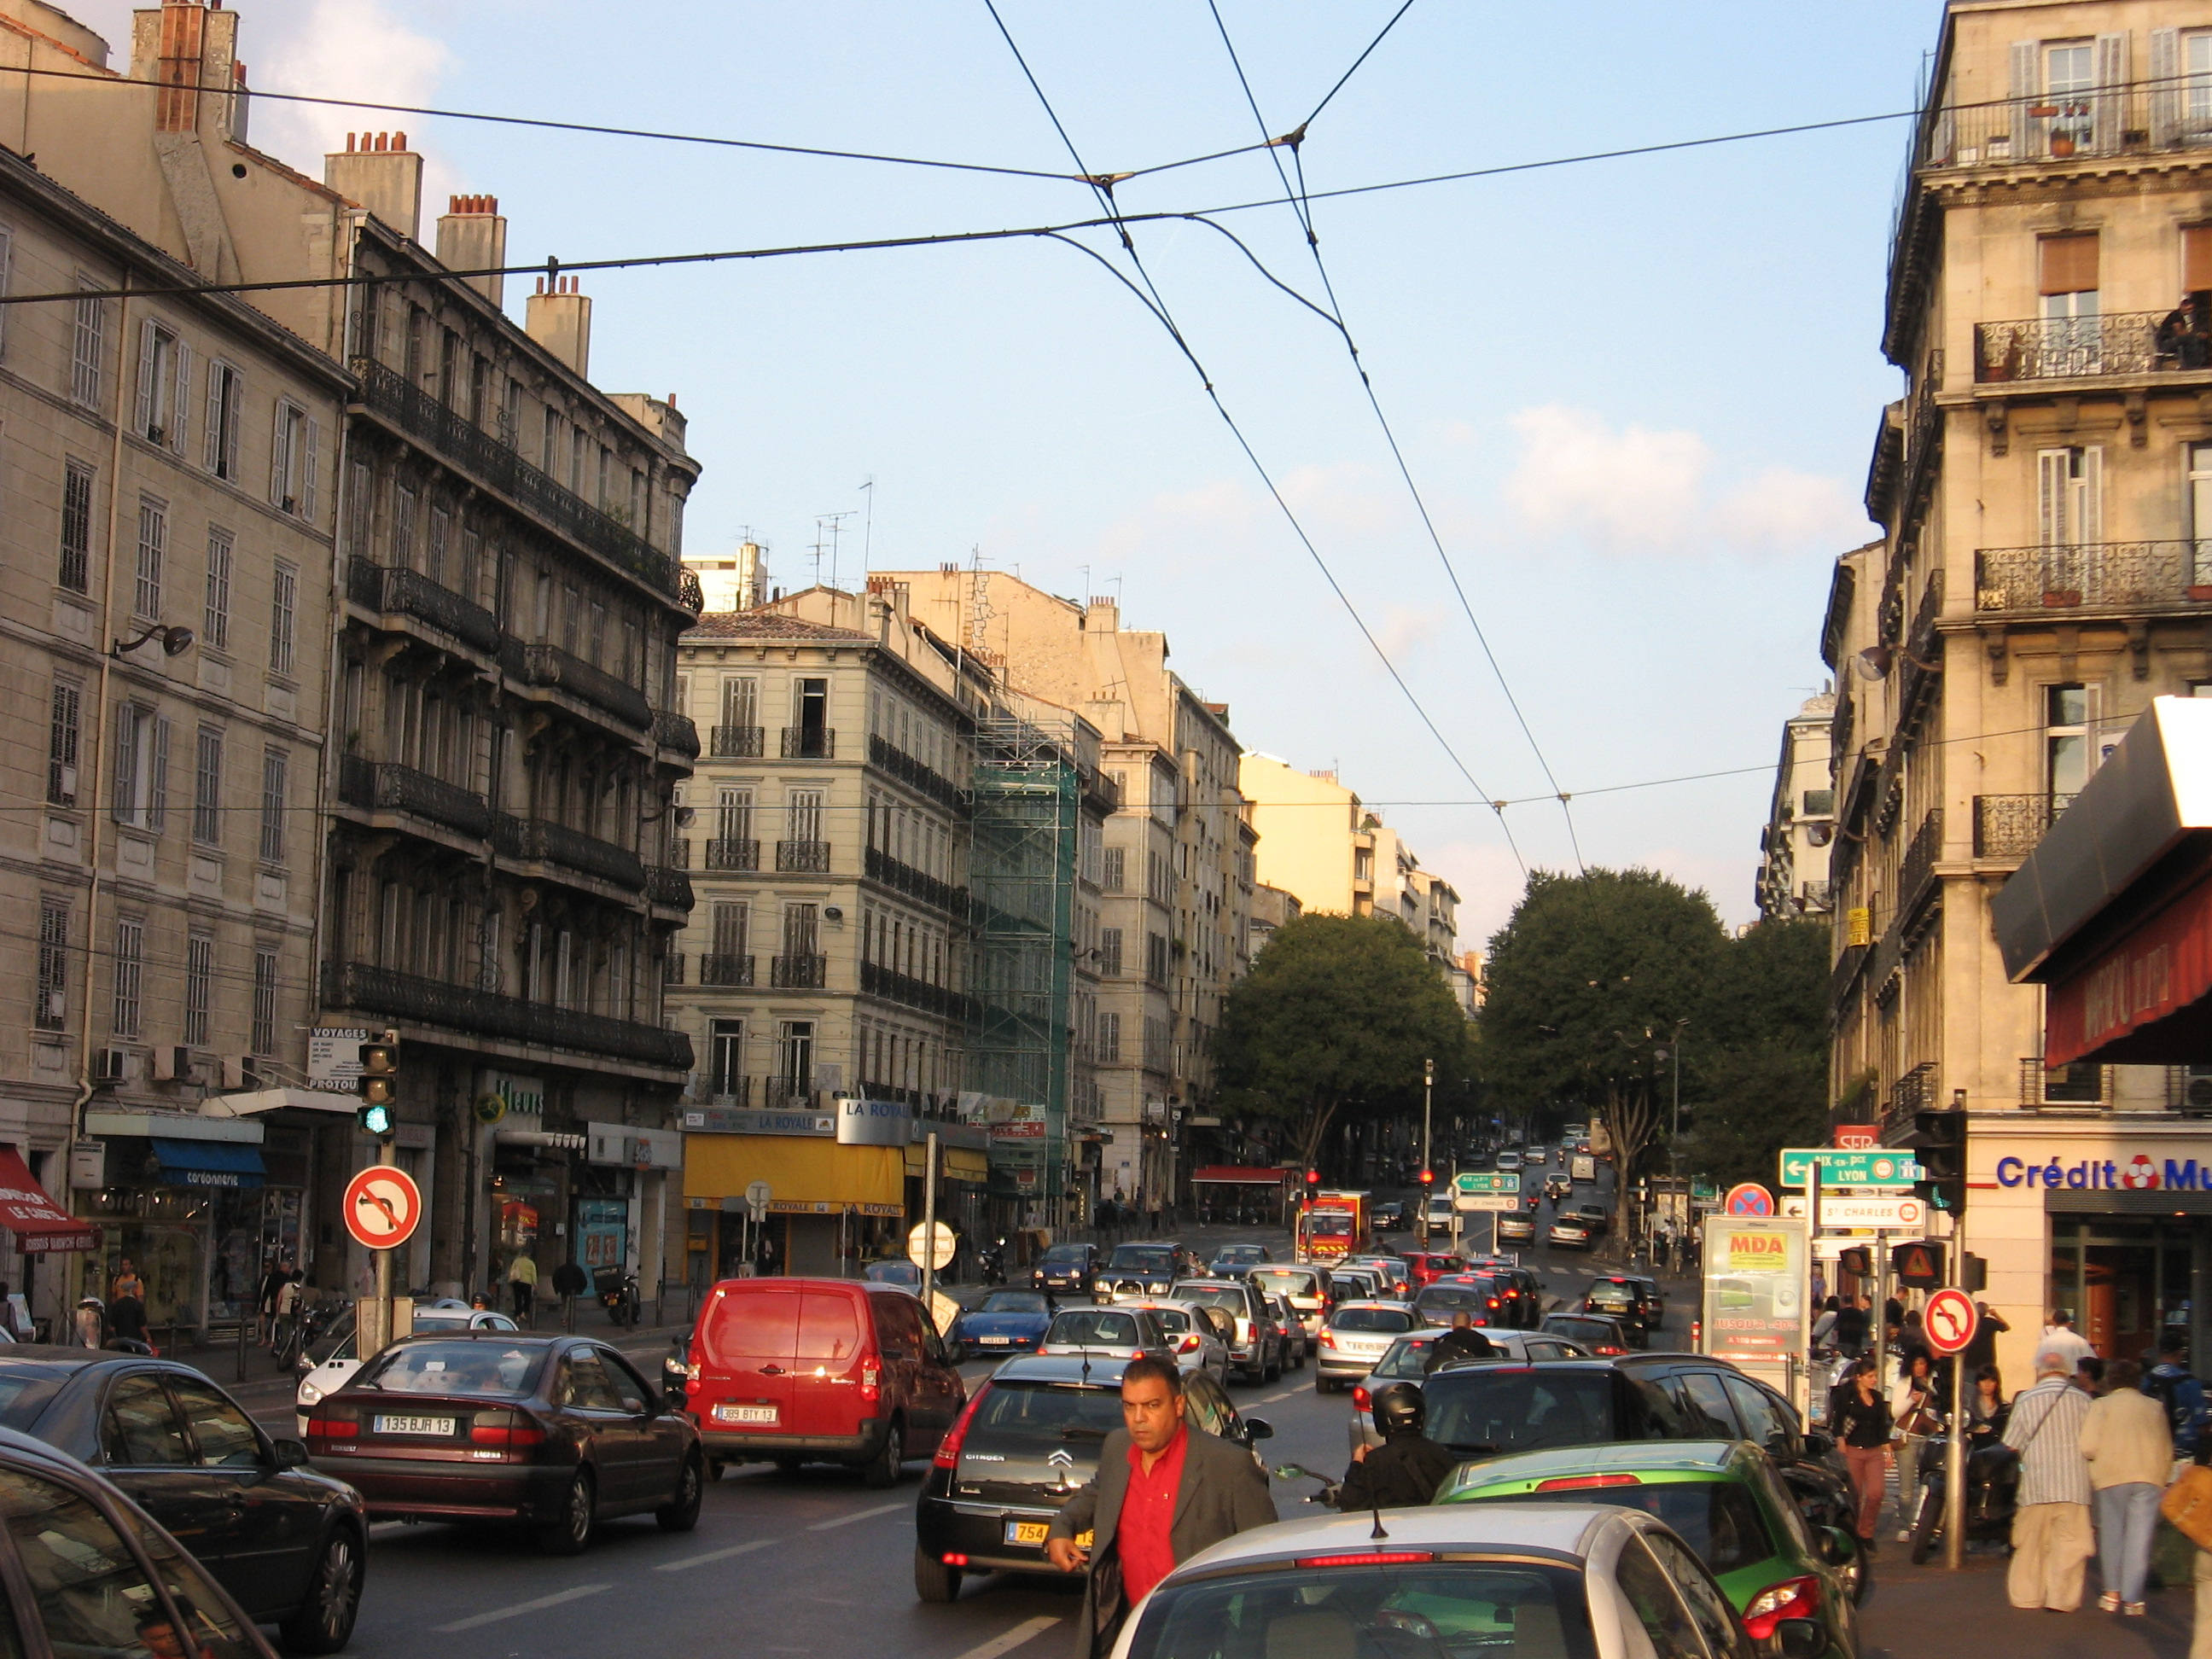 Boulevard Baille in Marseille, France shows City's Congestion. The photo depicts a major street in Marseille that is filled with cars.  Cars have even attempted to park halfway up the sidewalk on the right side of the photo. A man attempts to cross the street in-between the parked cars.